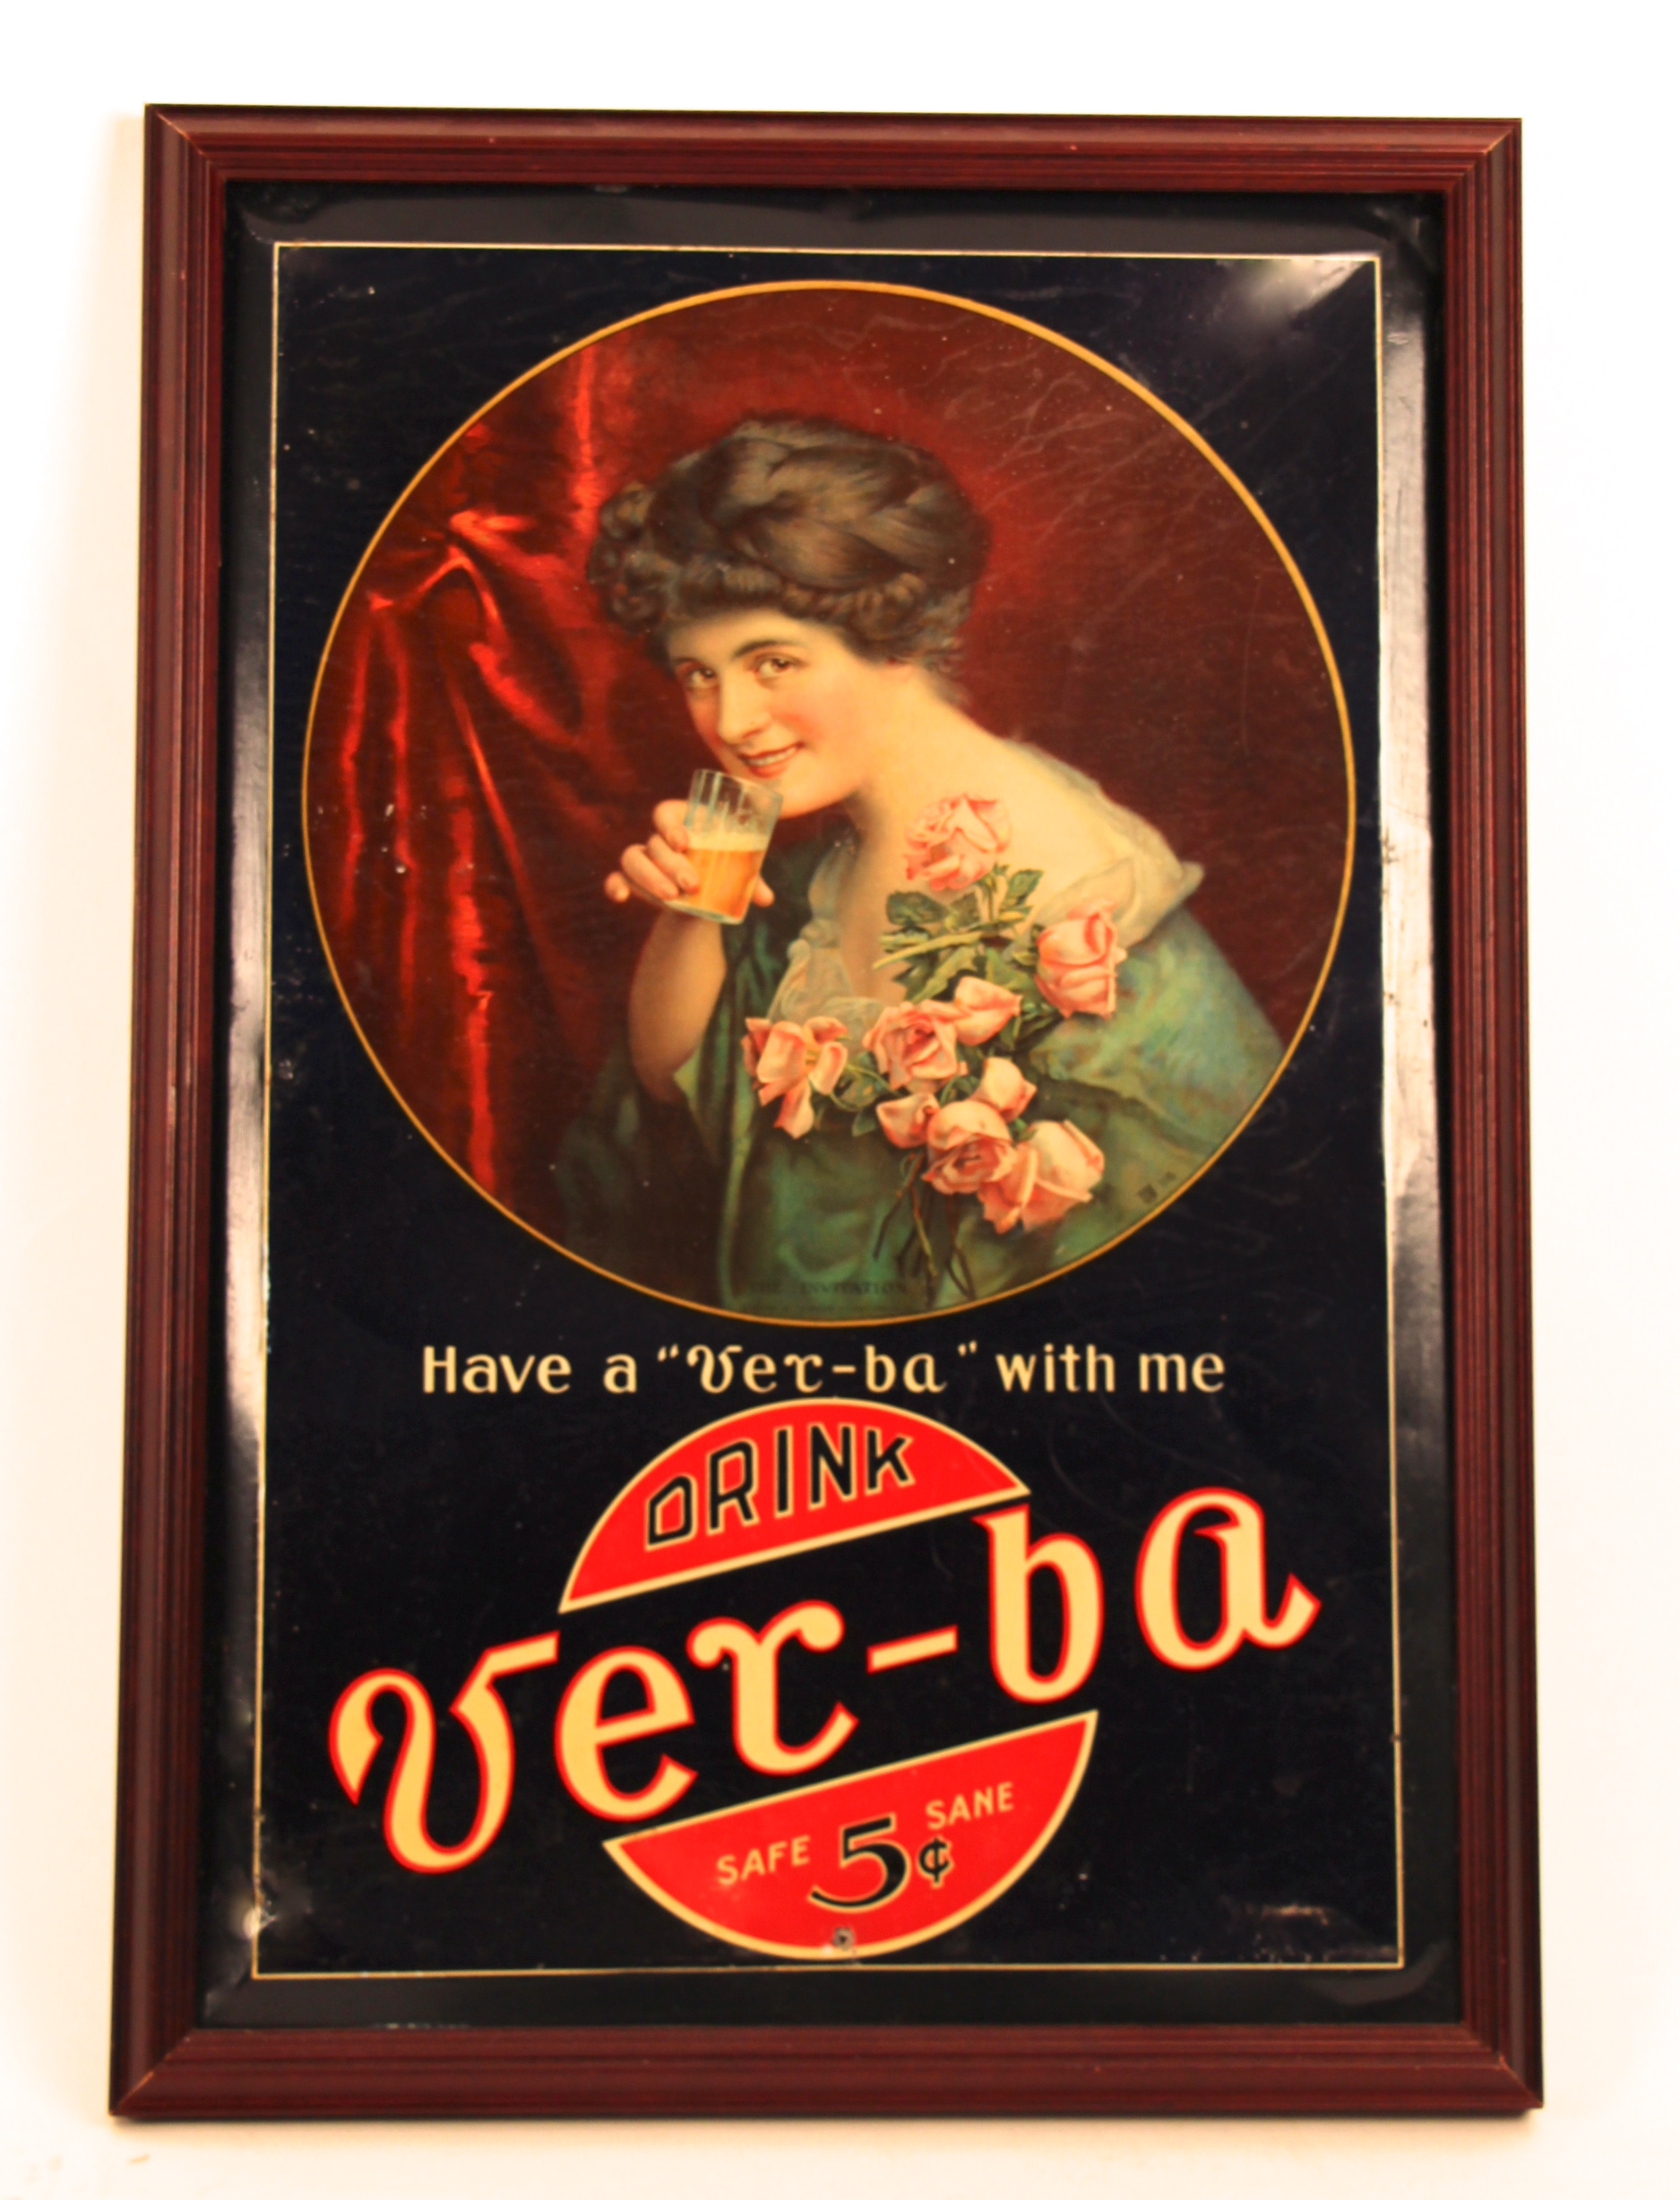 Ver-ba Safe Sane Soft Drink Tin Sign. Circa 19050